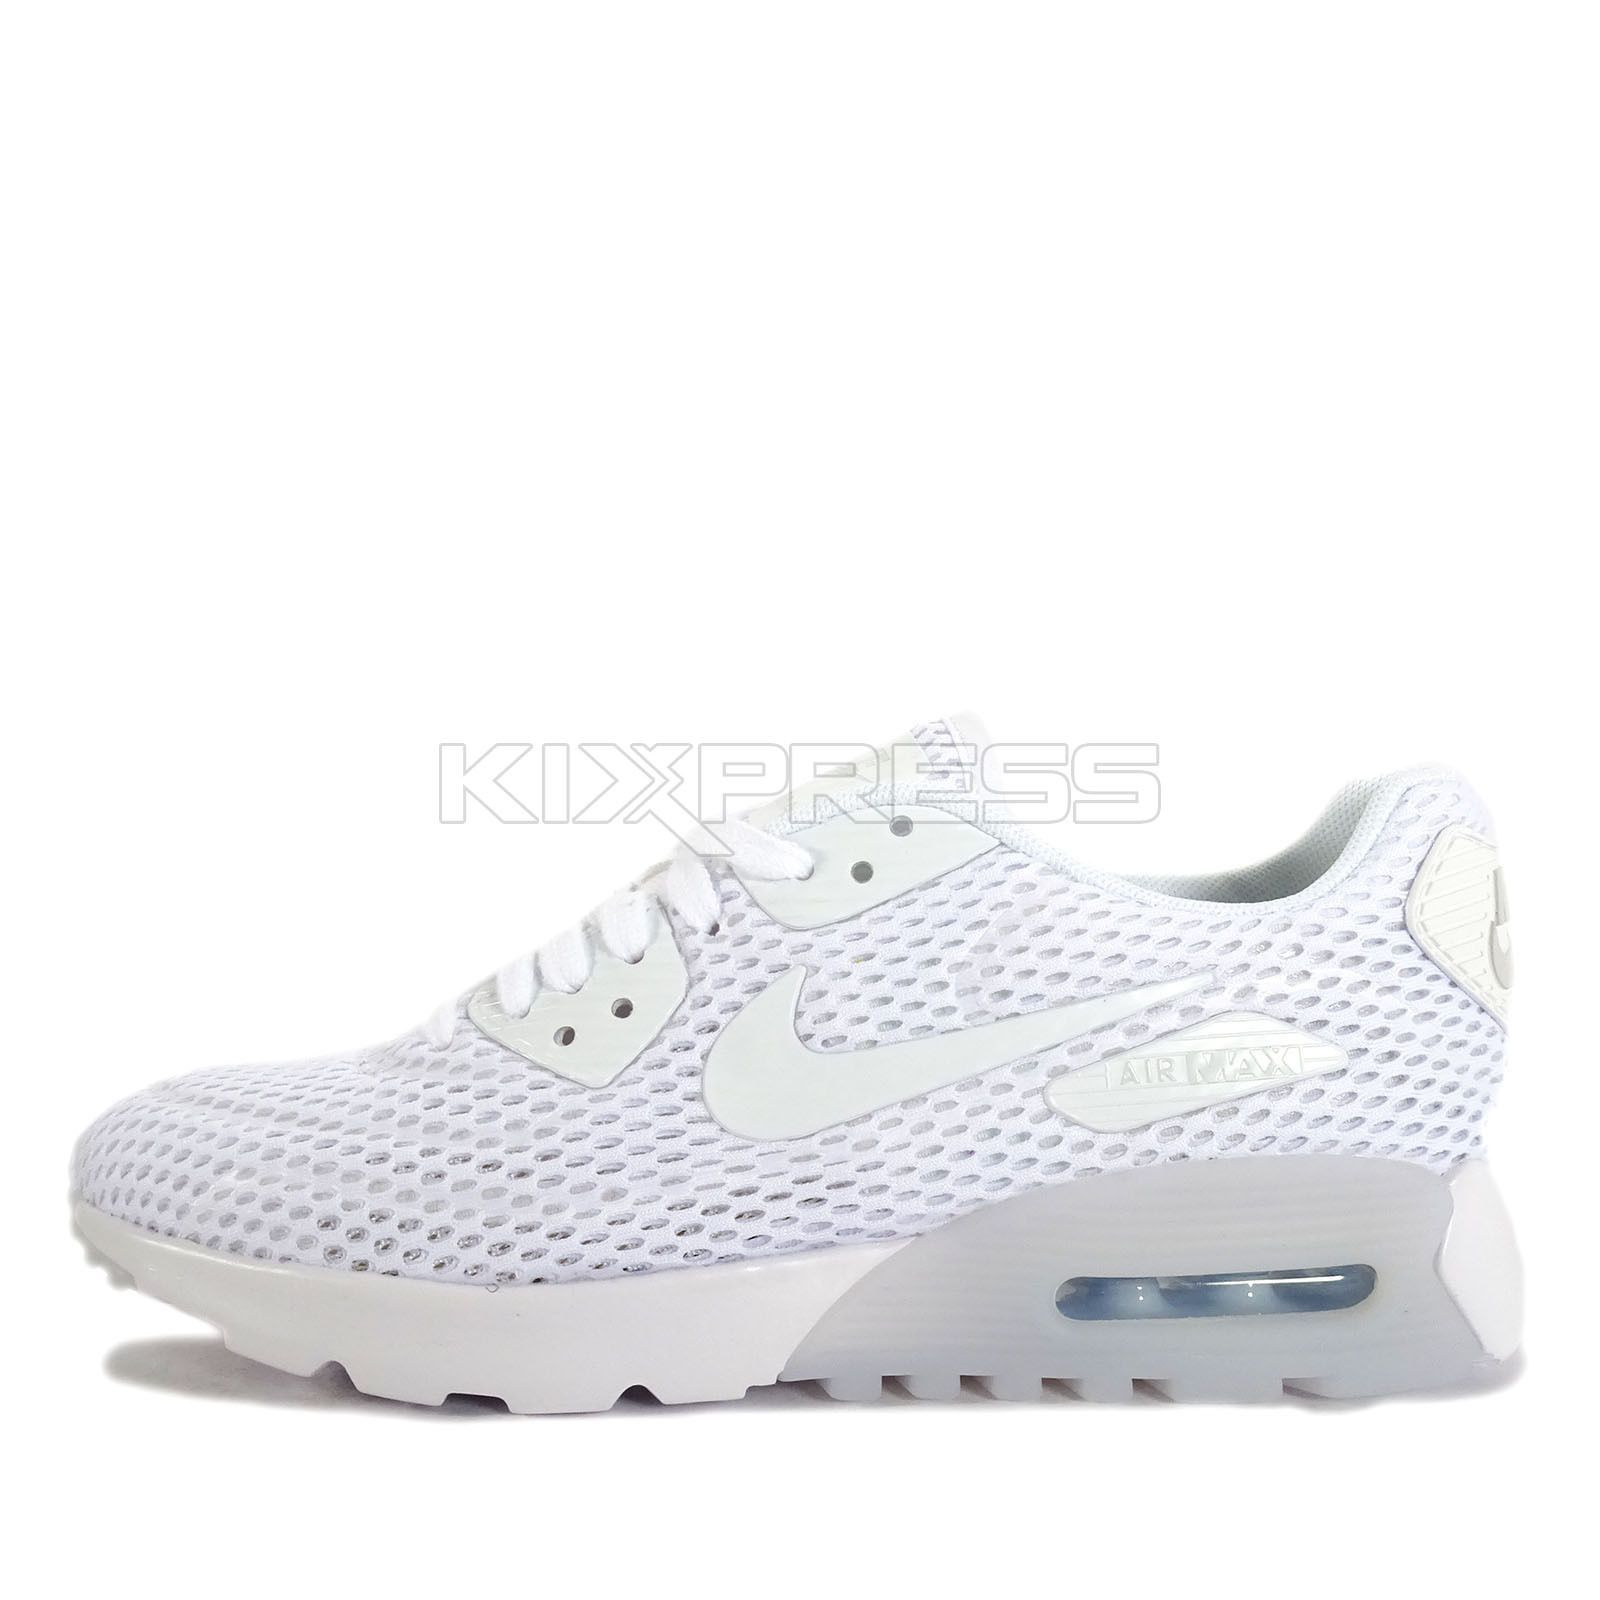 premium selection 1863c f391e Nike Wmns Air Max 90 Ultra Br  725061-104  Nsw Running White Pure Platinum